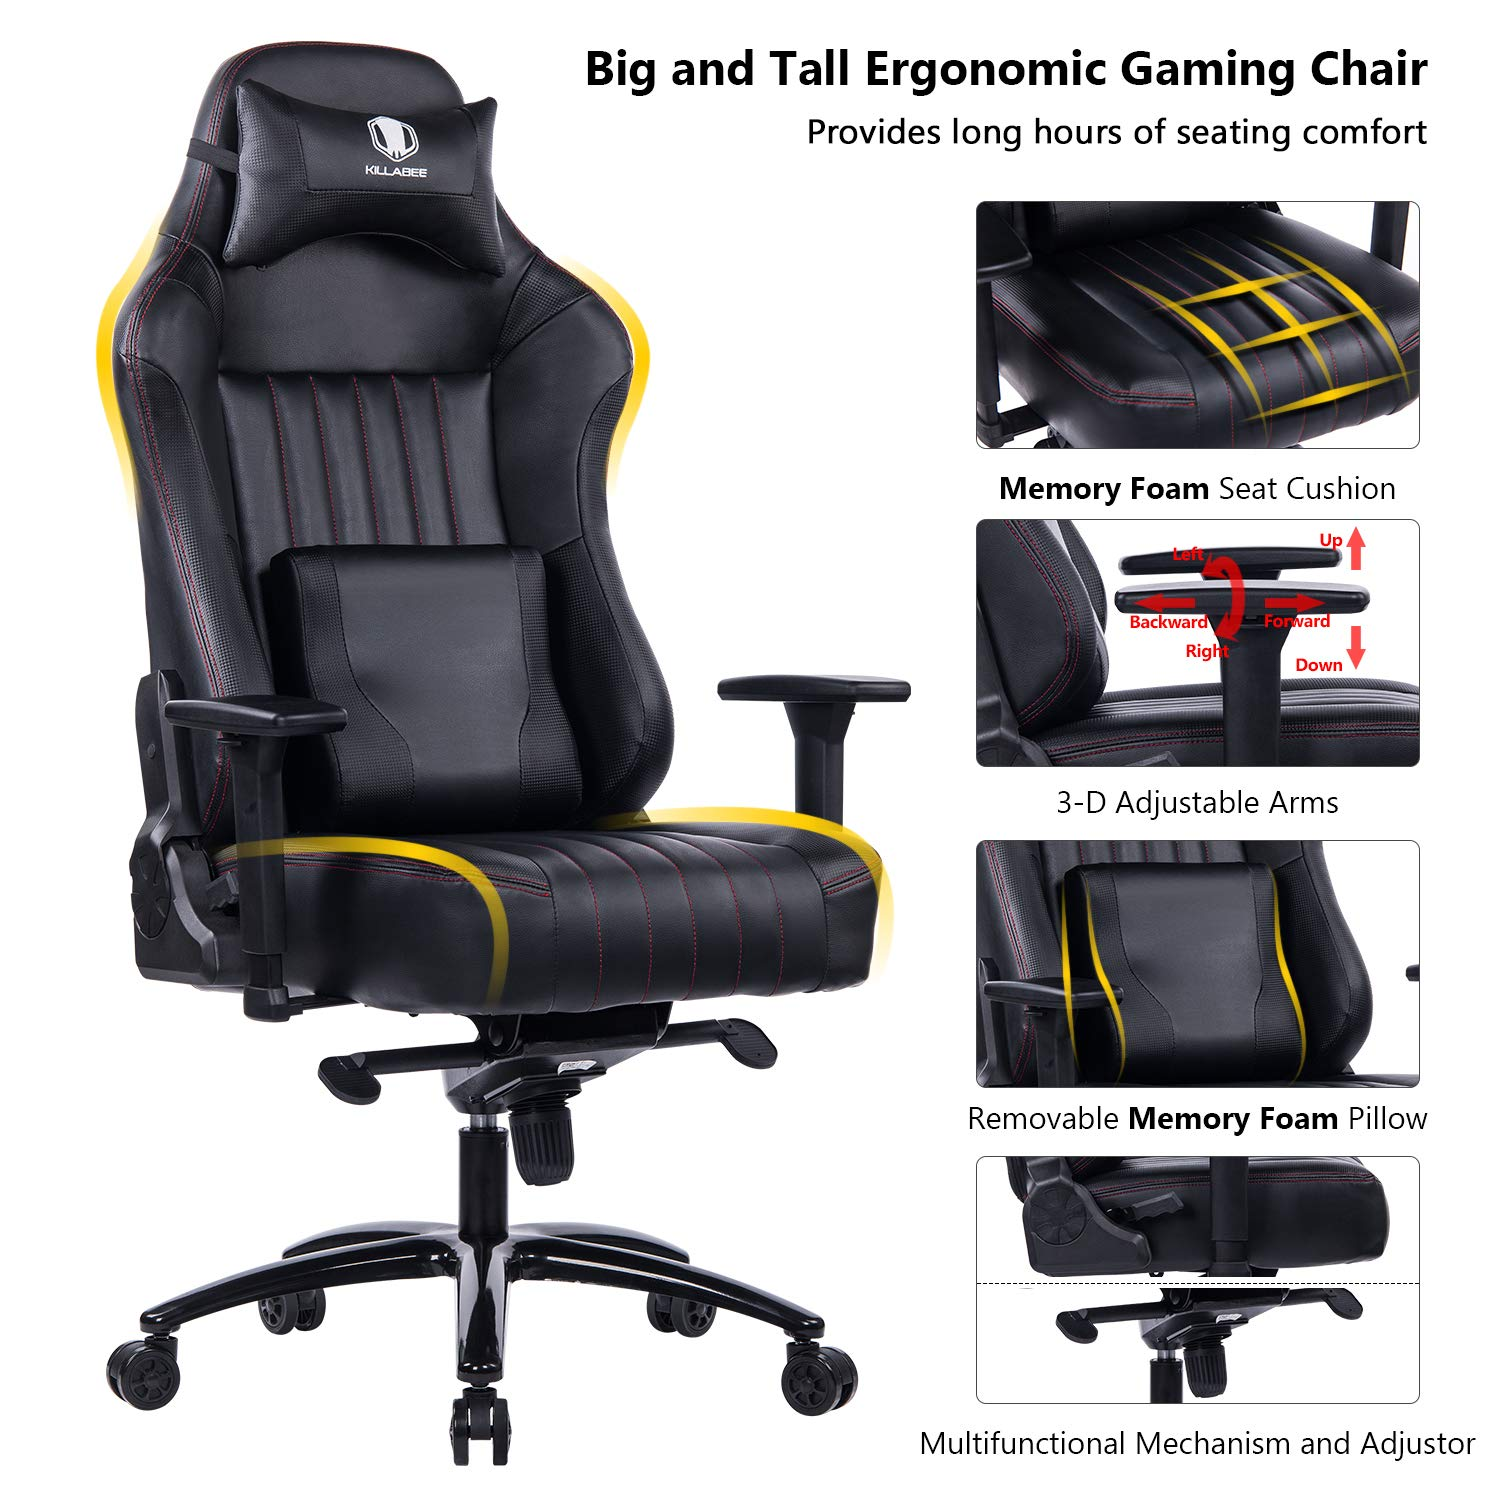 KILLABEE Big and Tall 400lb Memory Foam Gaming Chair Metal Base - Adjustable Tilt, Back Angle and 3D Arms Ergonomic High-Back Leather Racing Executive Computer Desk Office Chair, Dark Black